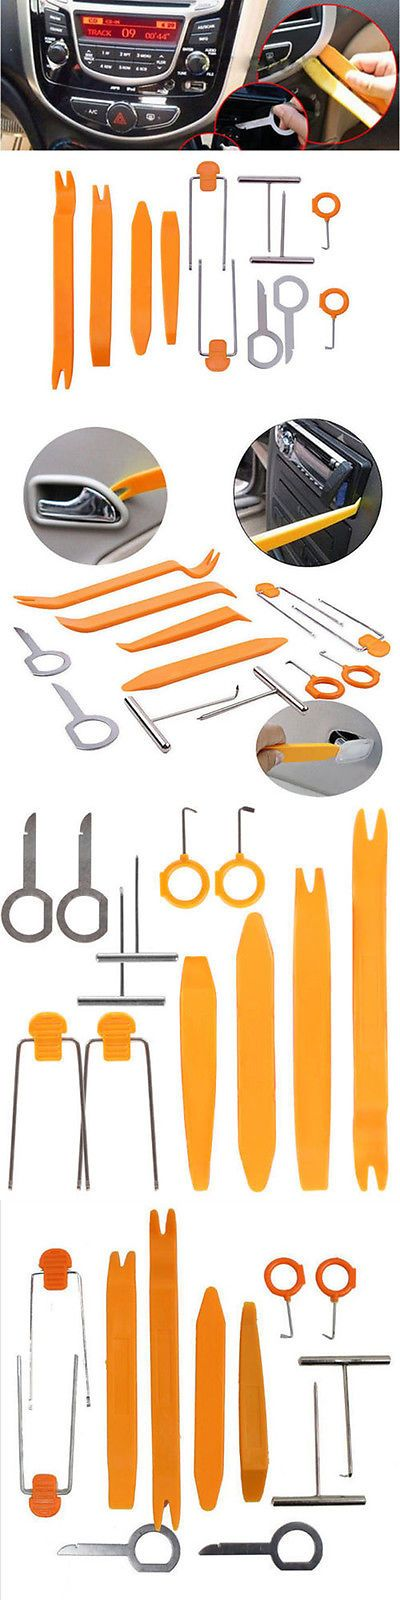 Car Audio Video And GPS: 12Pcs Professional Car Auto Dismantle Tools Set For Gps Video And Audio System BUY IT NOW ONLY: $3.79